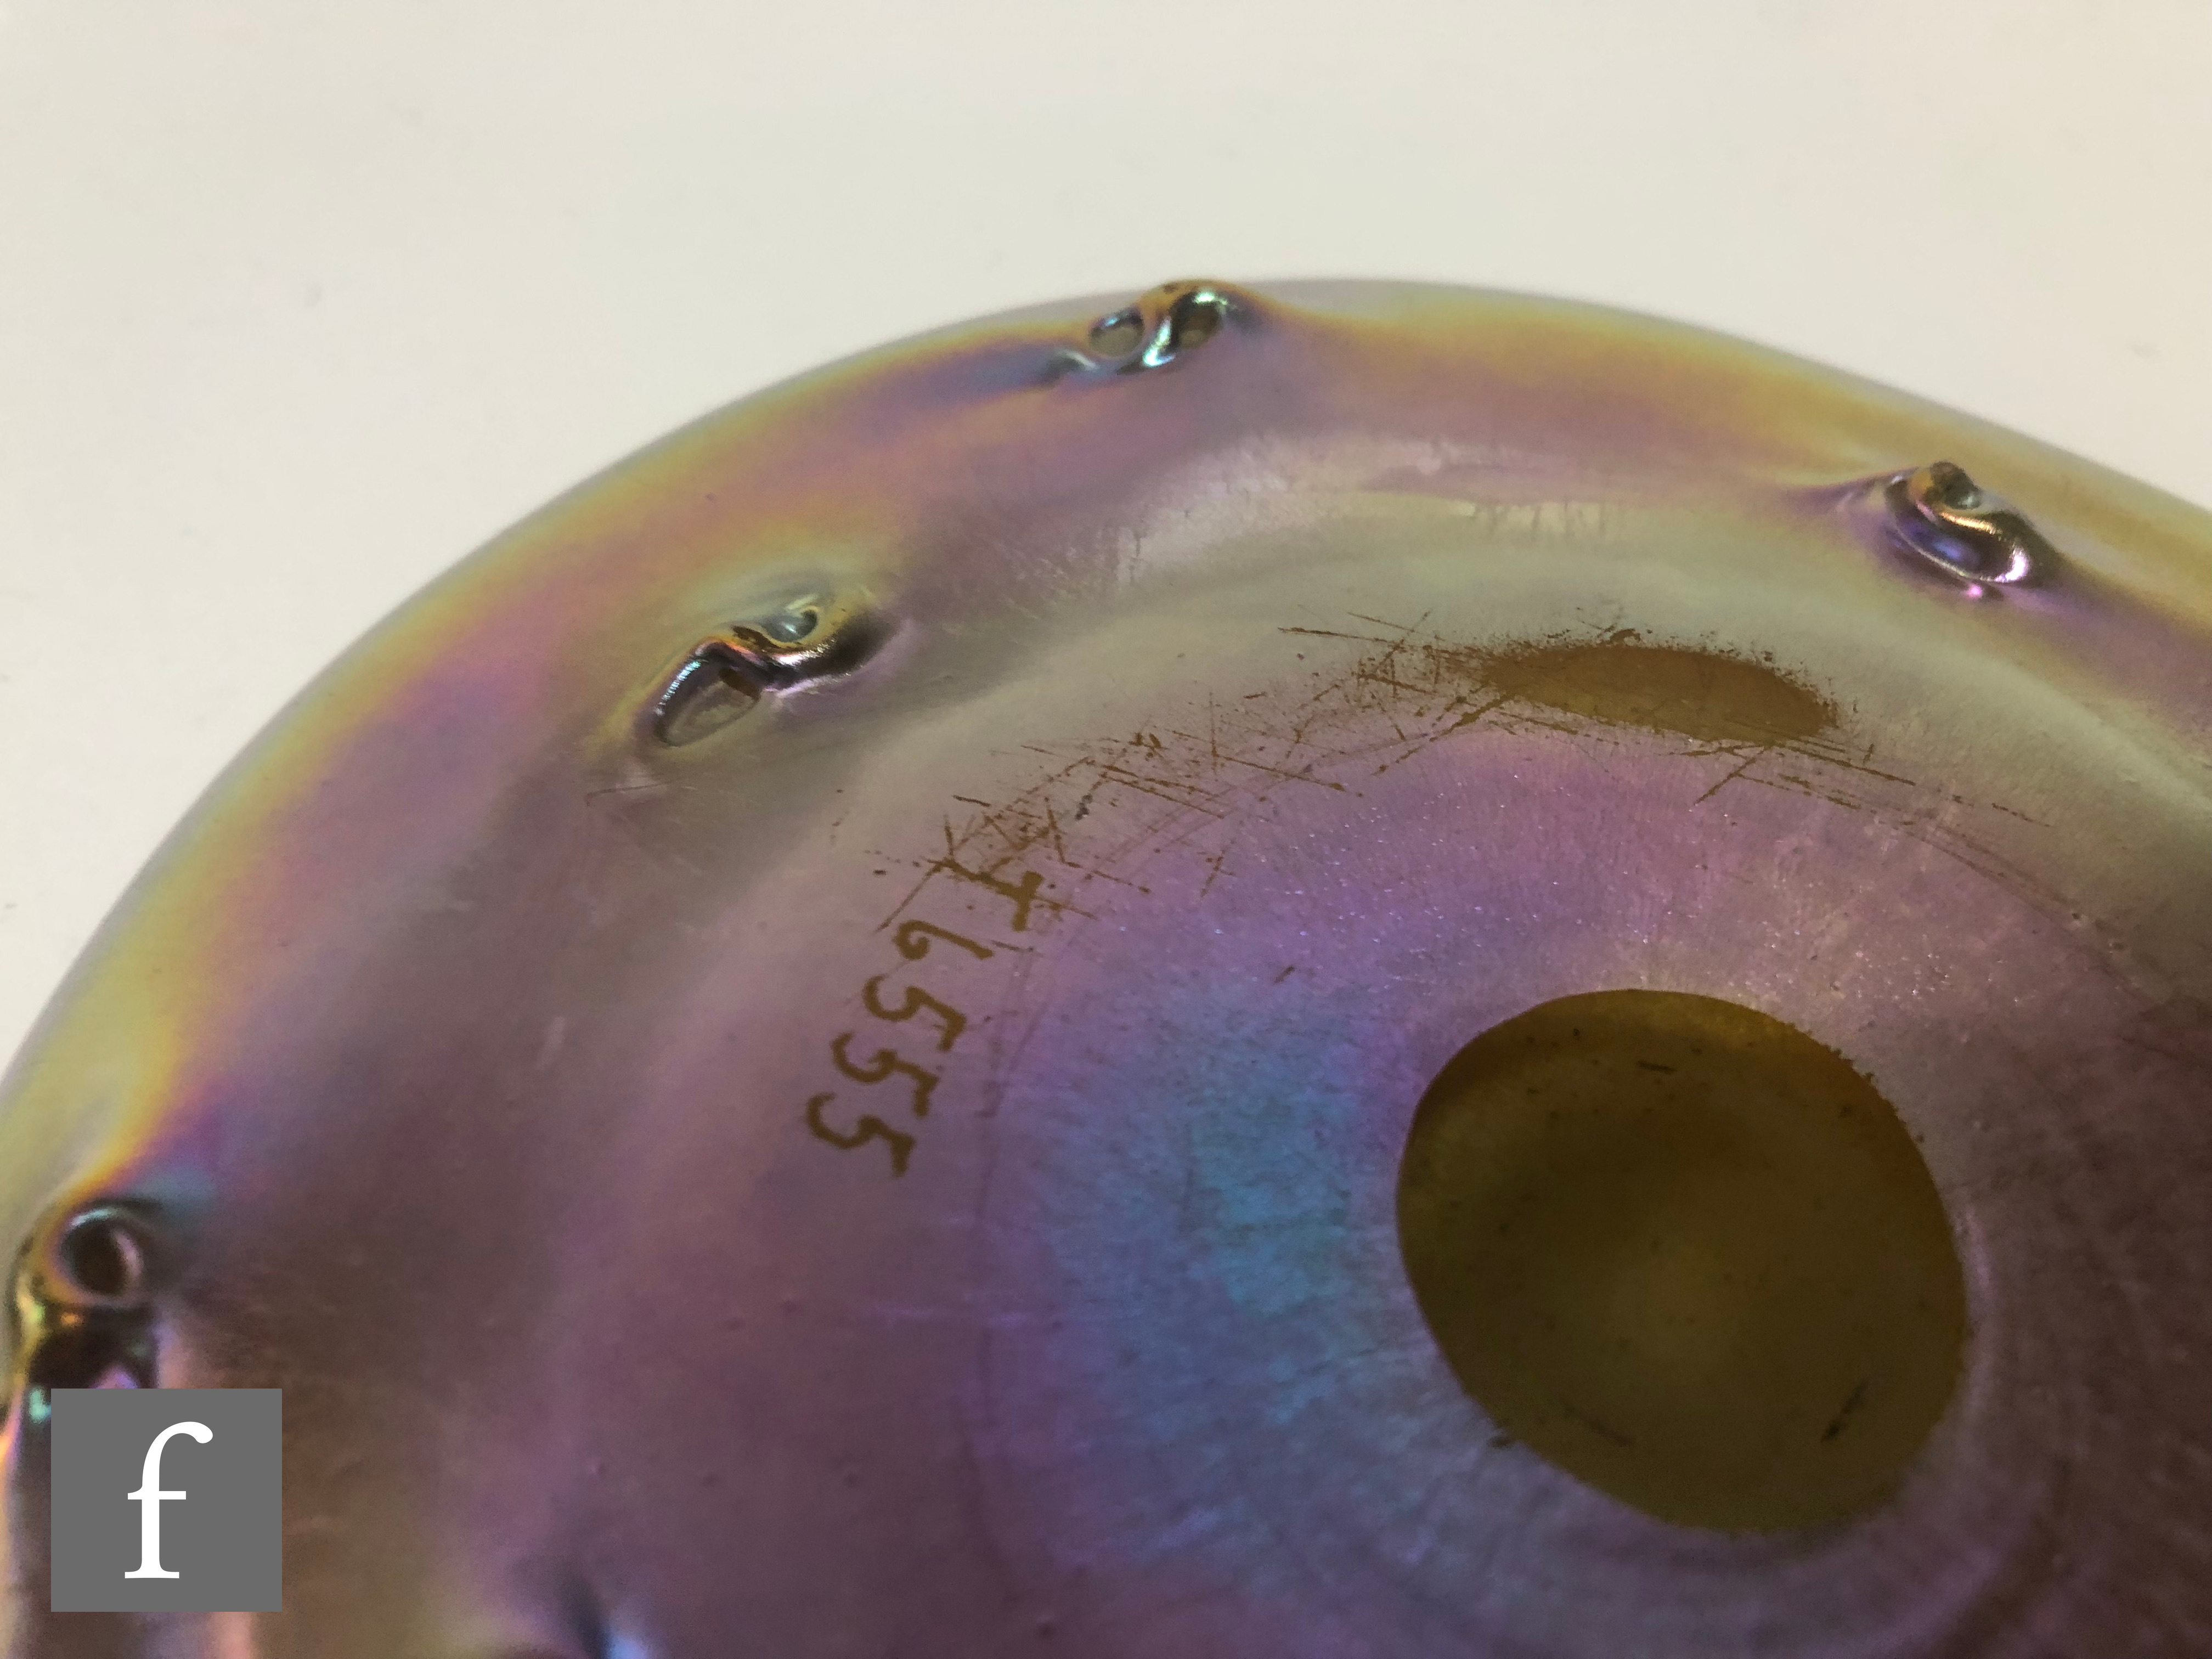 Louis Comfort Tiffany - A Favrile finger bowl of circular section with flared rim and nipped whirl - Image 3 of 5